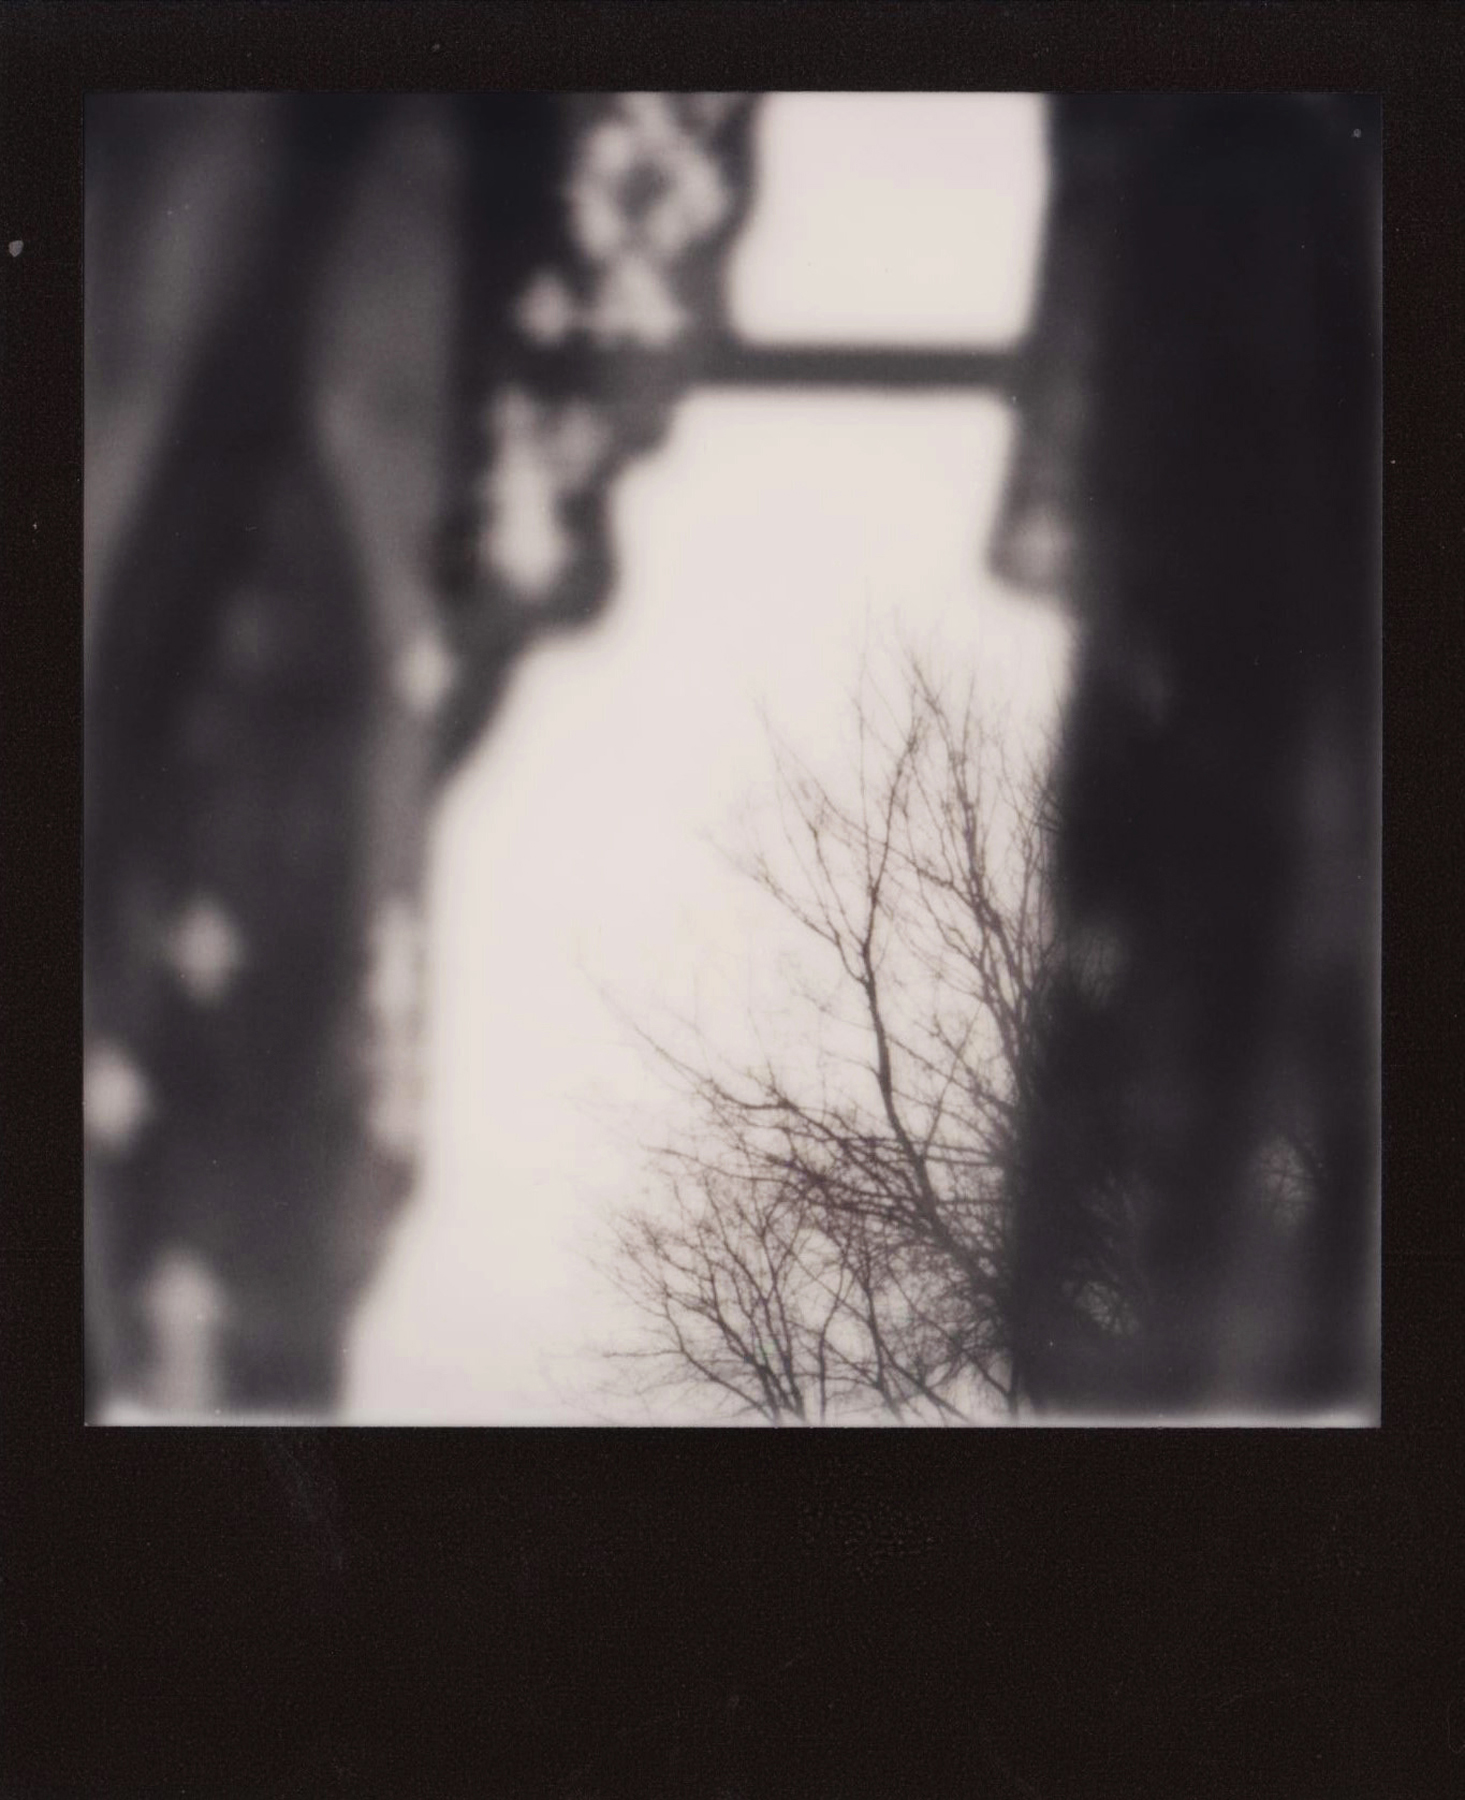 Abigail Crone |Winter Feeling |SX70 |Impossible Project Black and White